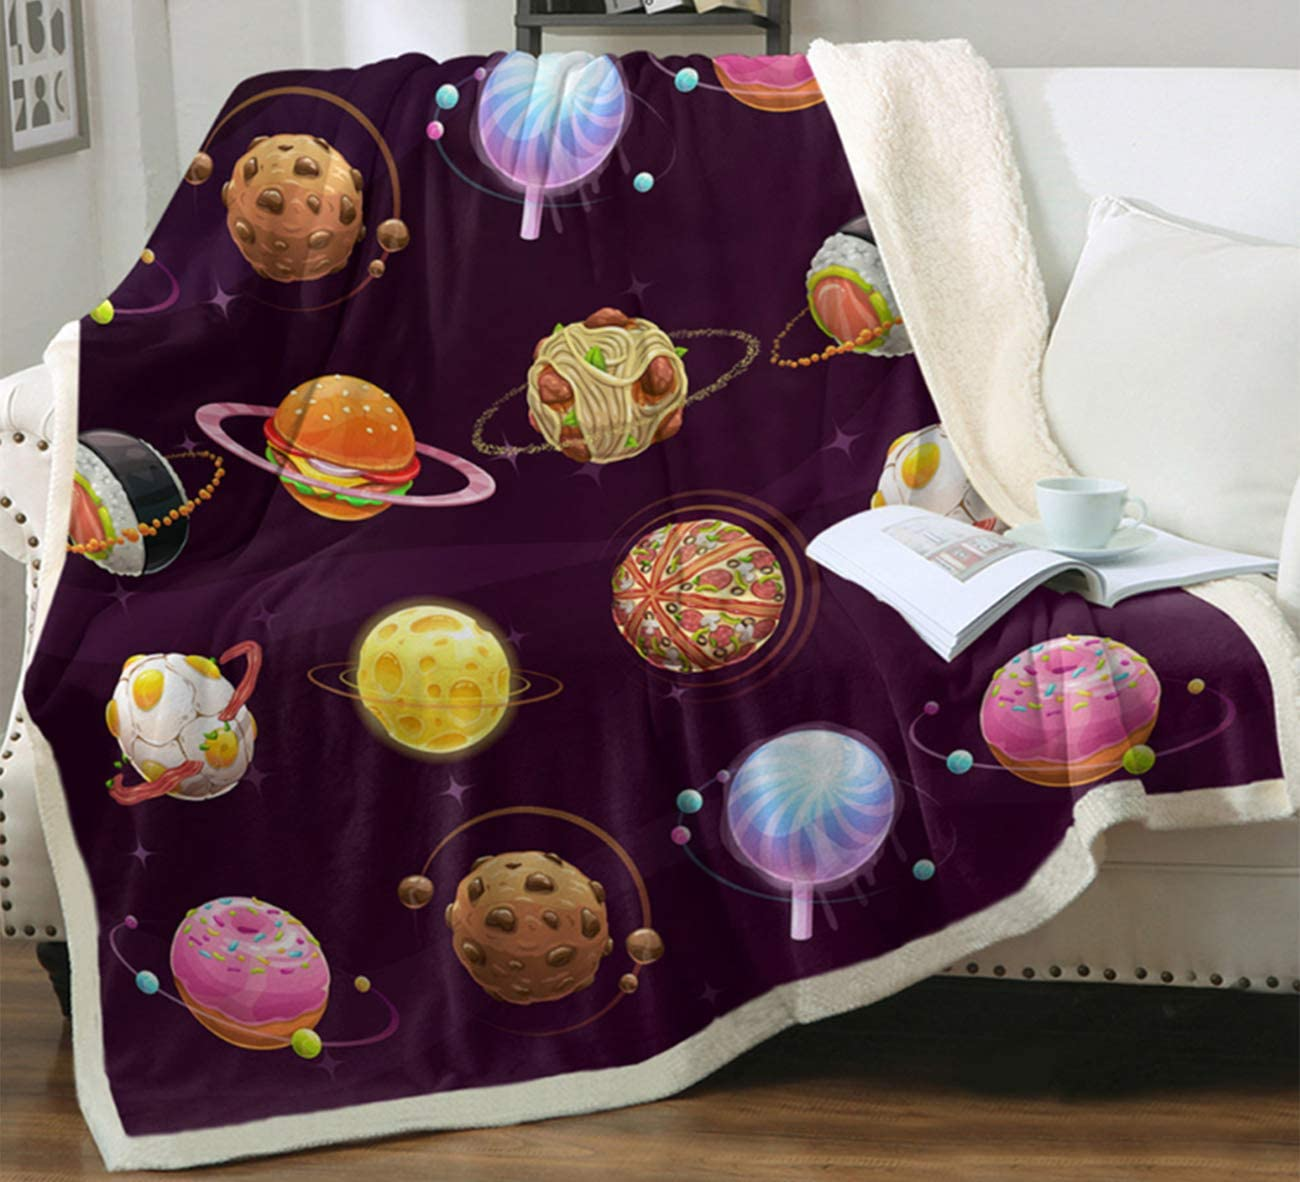 Space Adventure Cute Food Planets Throw Blanket Soft Lightweight Flannel Fleece Blanket for Baby Kids Youth Adult (Planets, 50